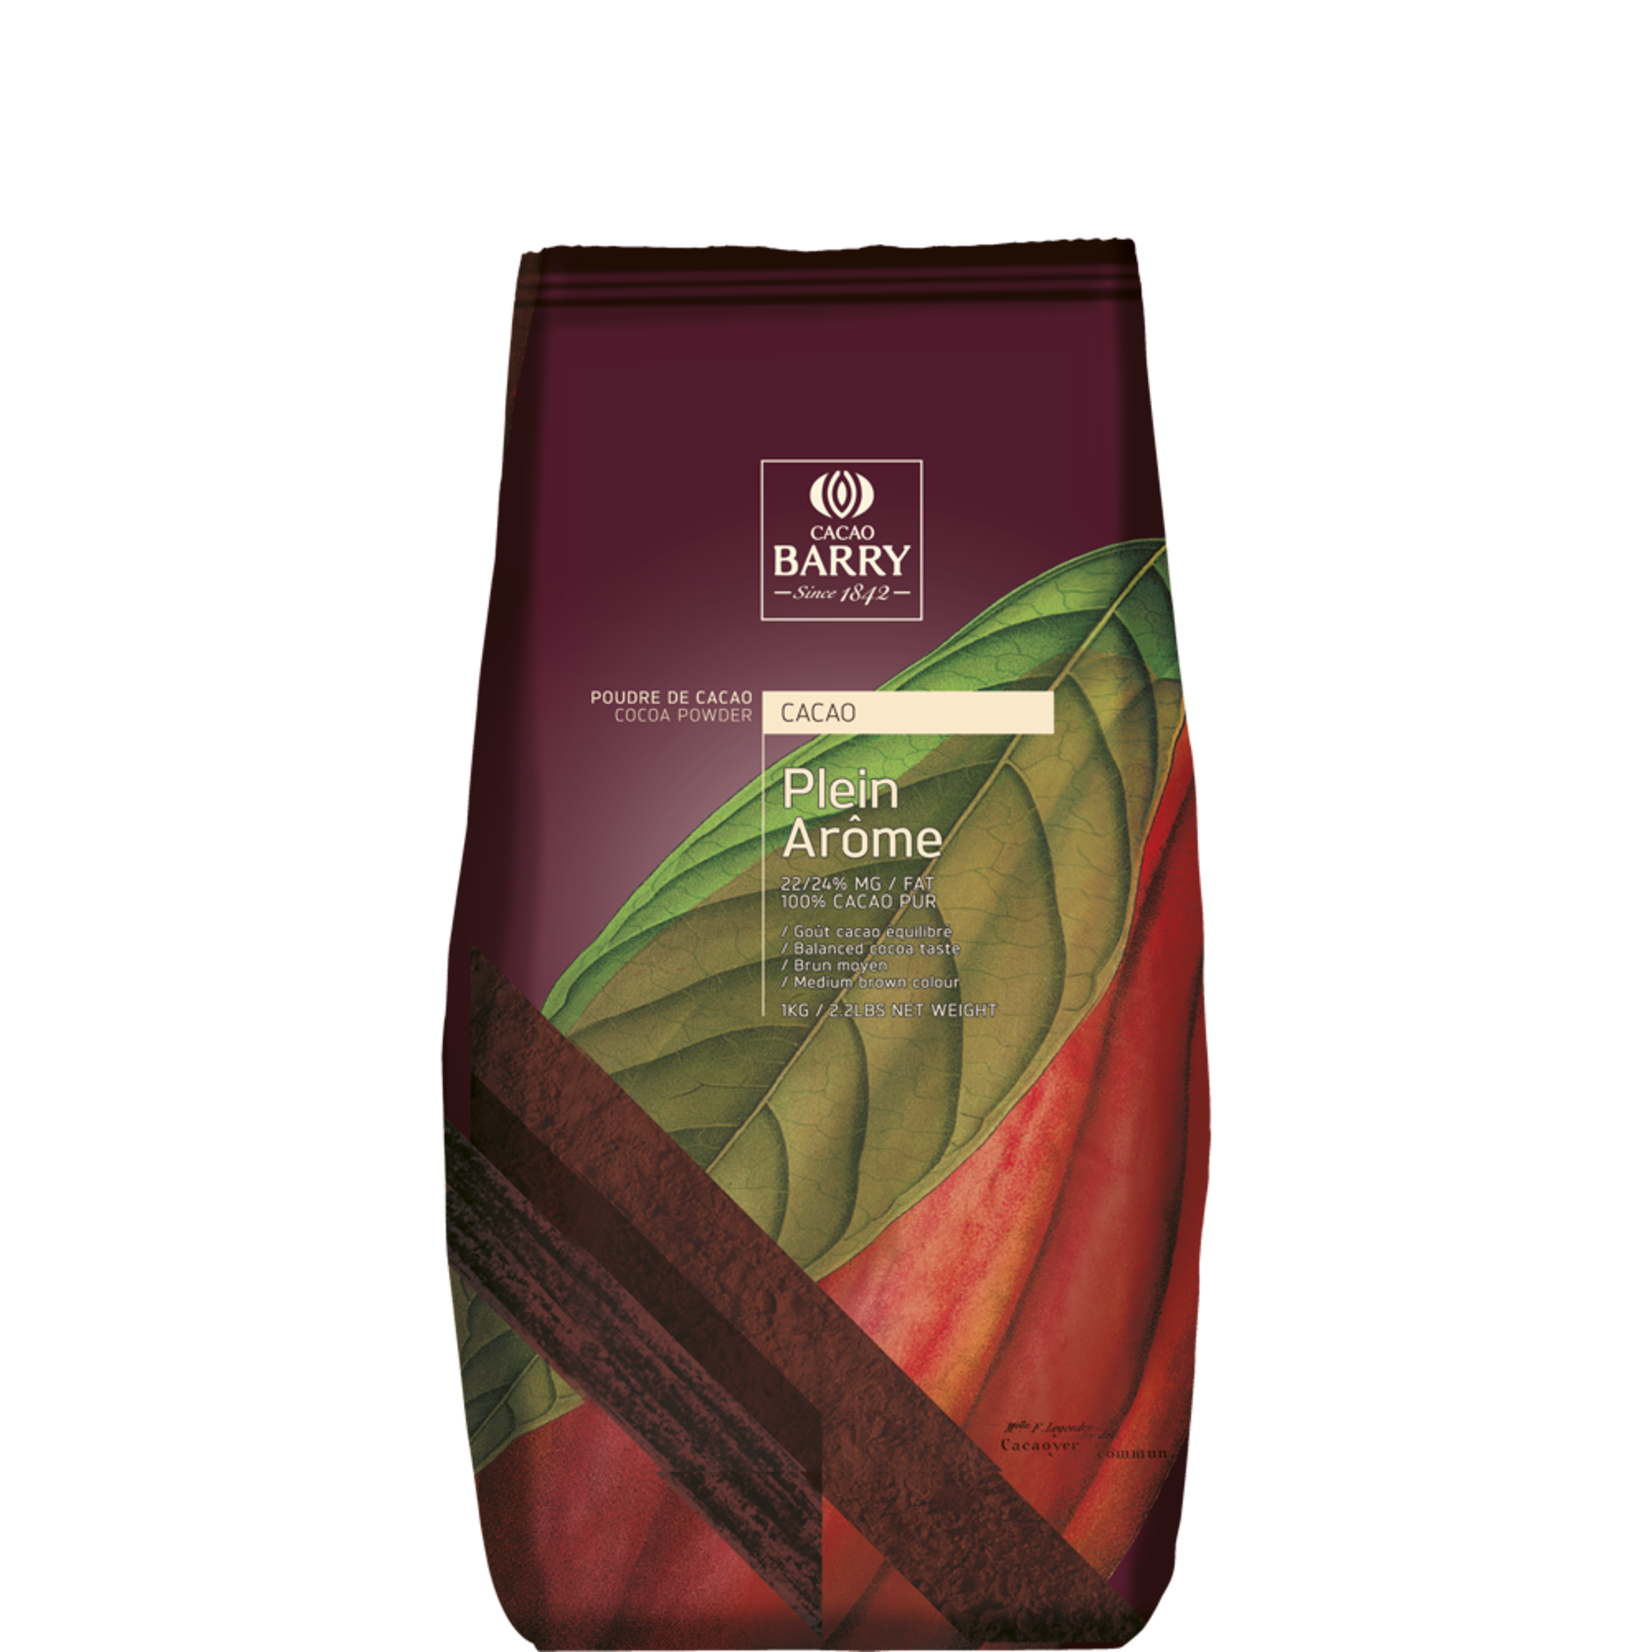 Cacao Barry Cacao Barry - Plein Arome Cocoa Powder 22-24% - 1kg/2.2lb, DCP-22GT-BY-760